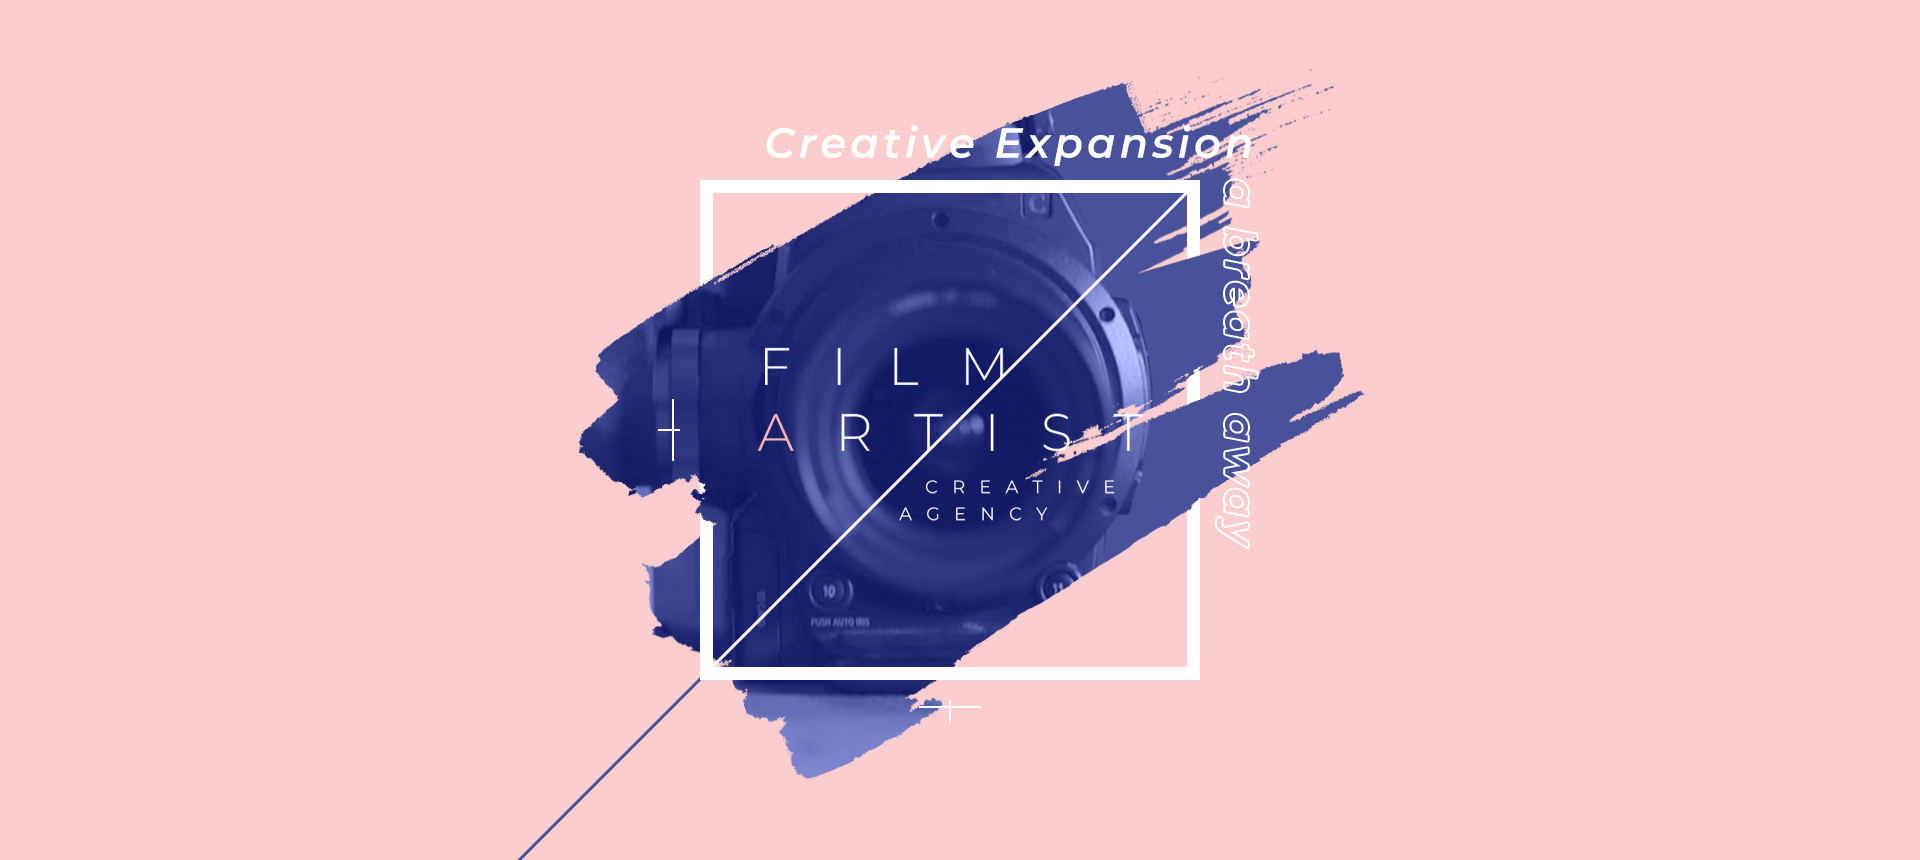 FILMARTIST Creative Agency | Creative Expansion a breath away